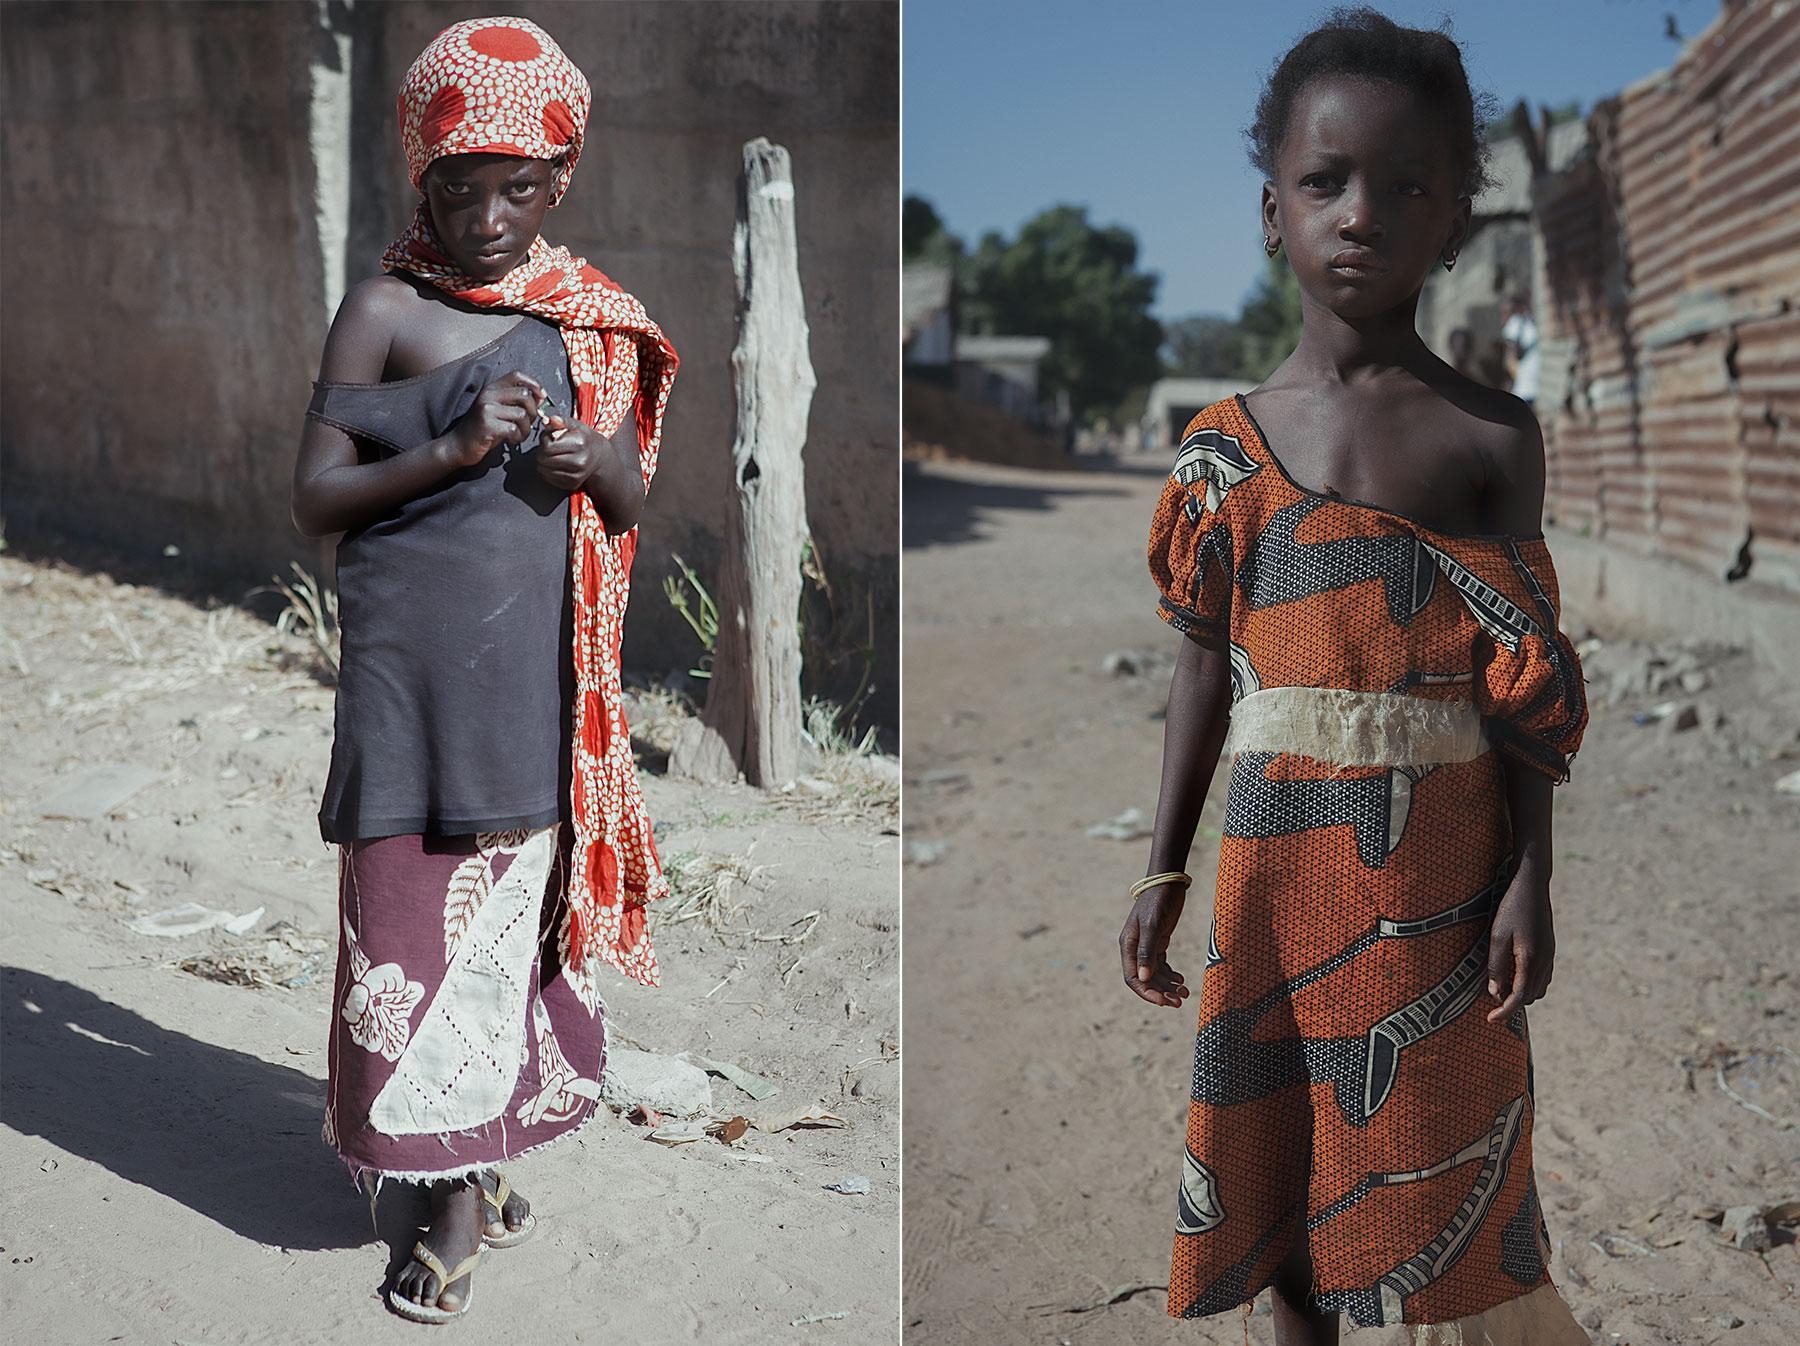 Good Boy Wolf Photographer, Gambia, west Africa, poor children wearing traditional dress